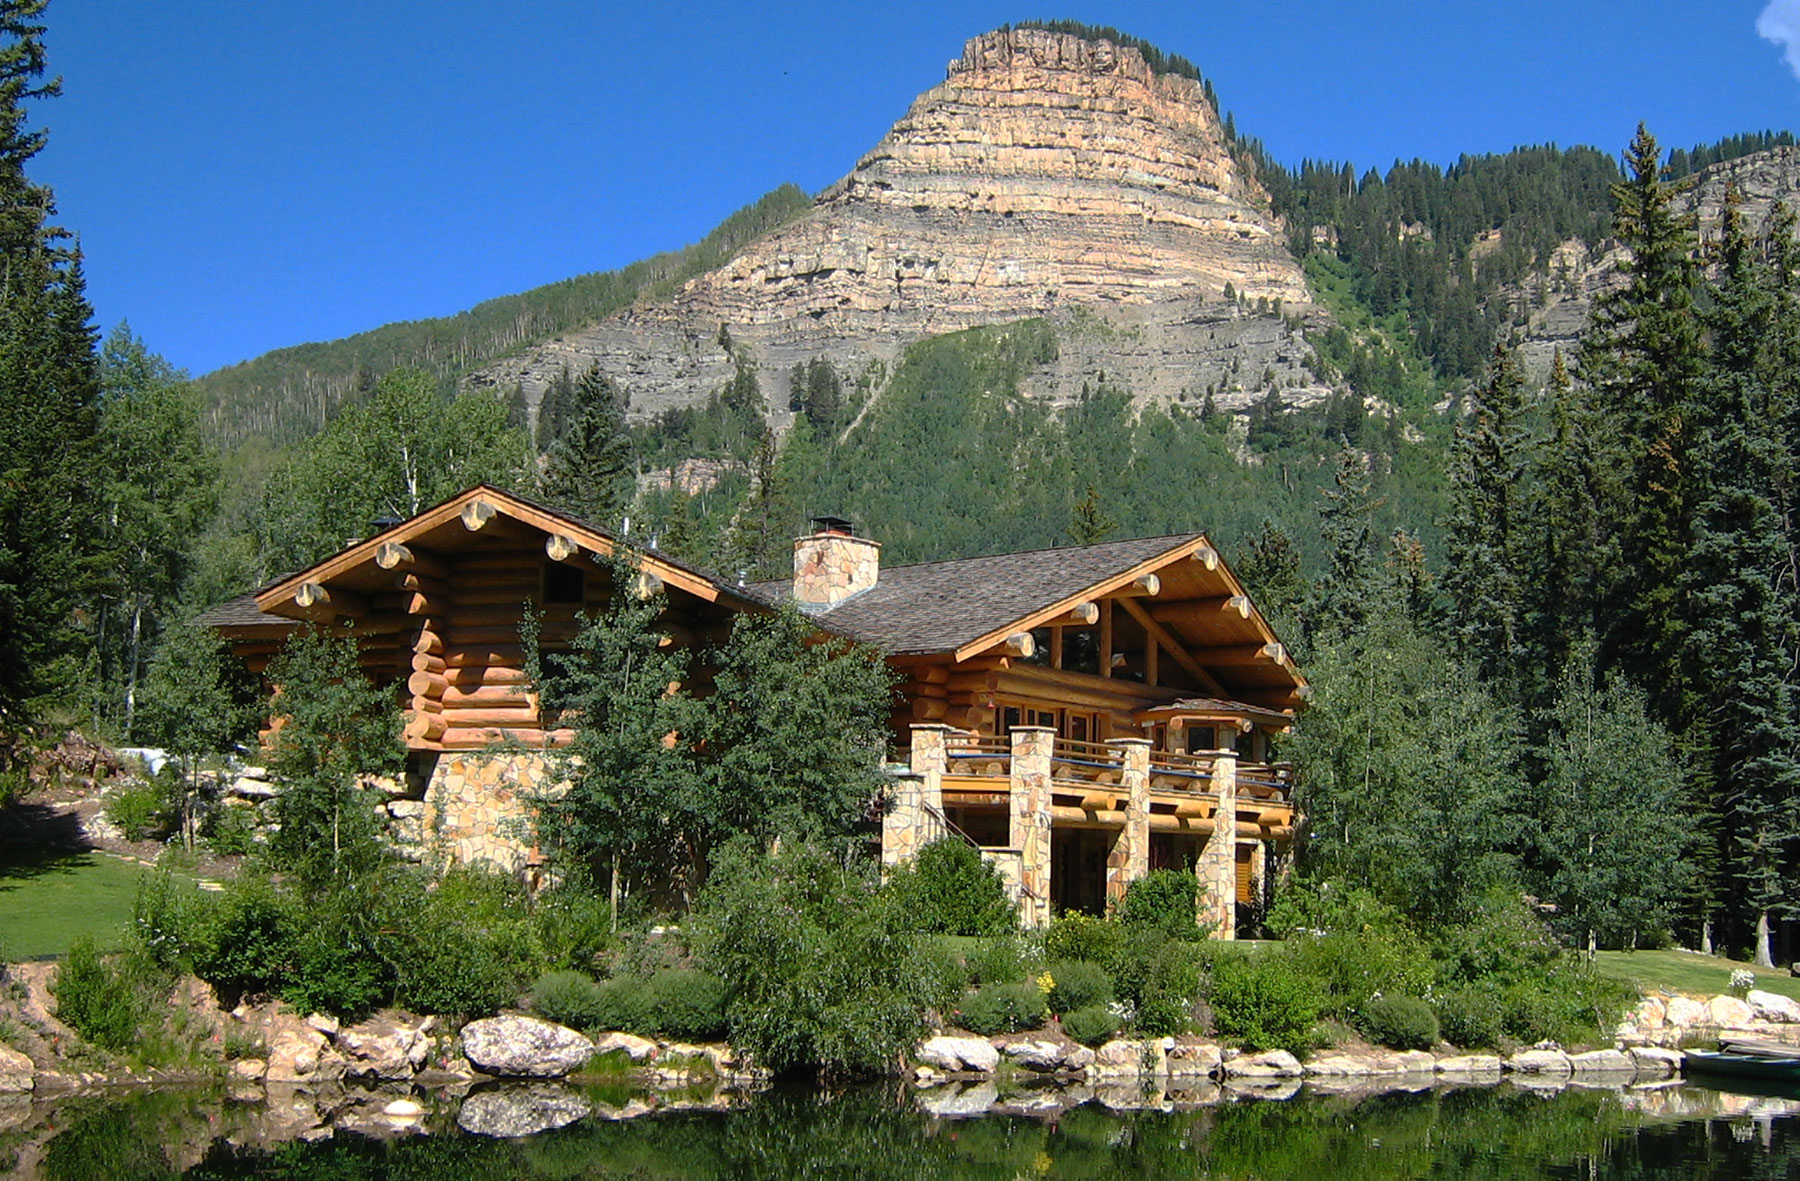 juan homesserving colorado builders cabins in for distinctive home pagosa to durango sale san homes springs telluride log structures and from custom southwest